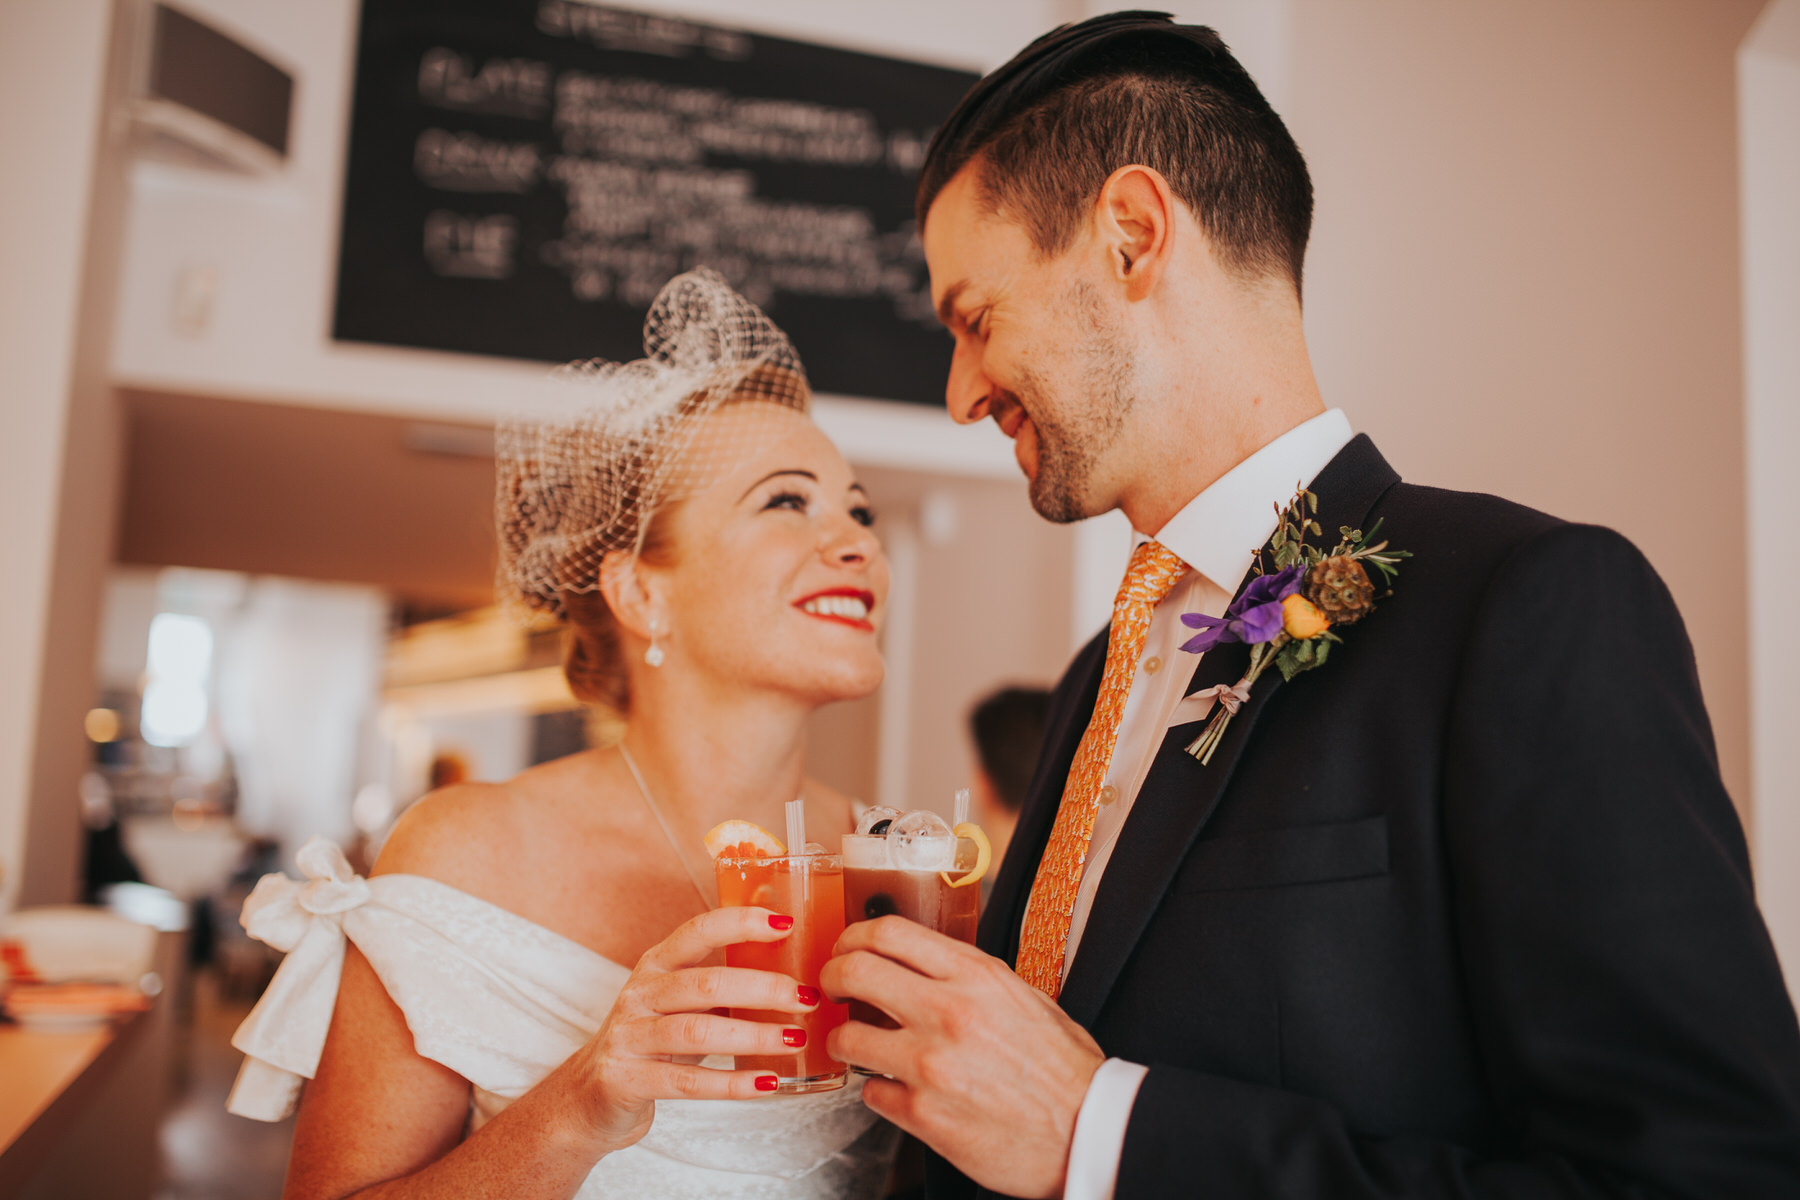 MS-Londesborough-Pub-wedding-Hackney-alternative-photographer-66-bride-drinking-cocktails-Ritas-London.jpg